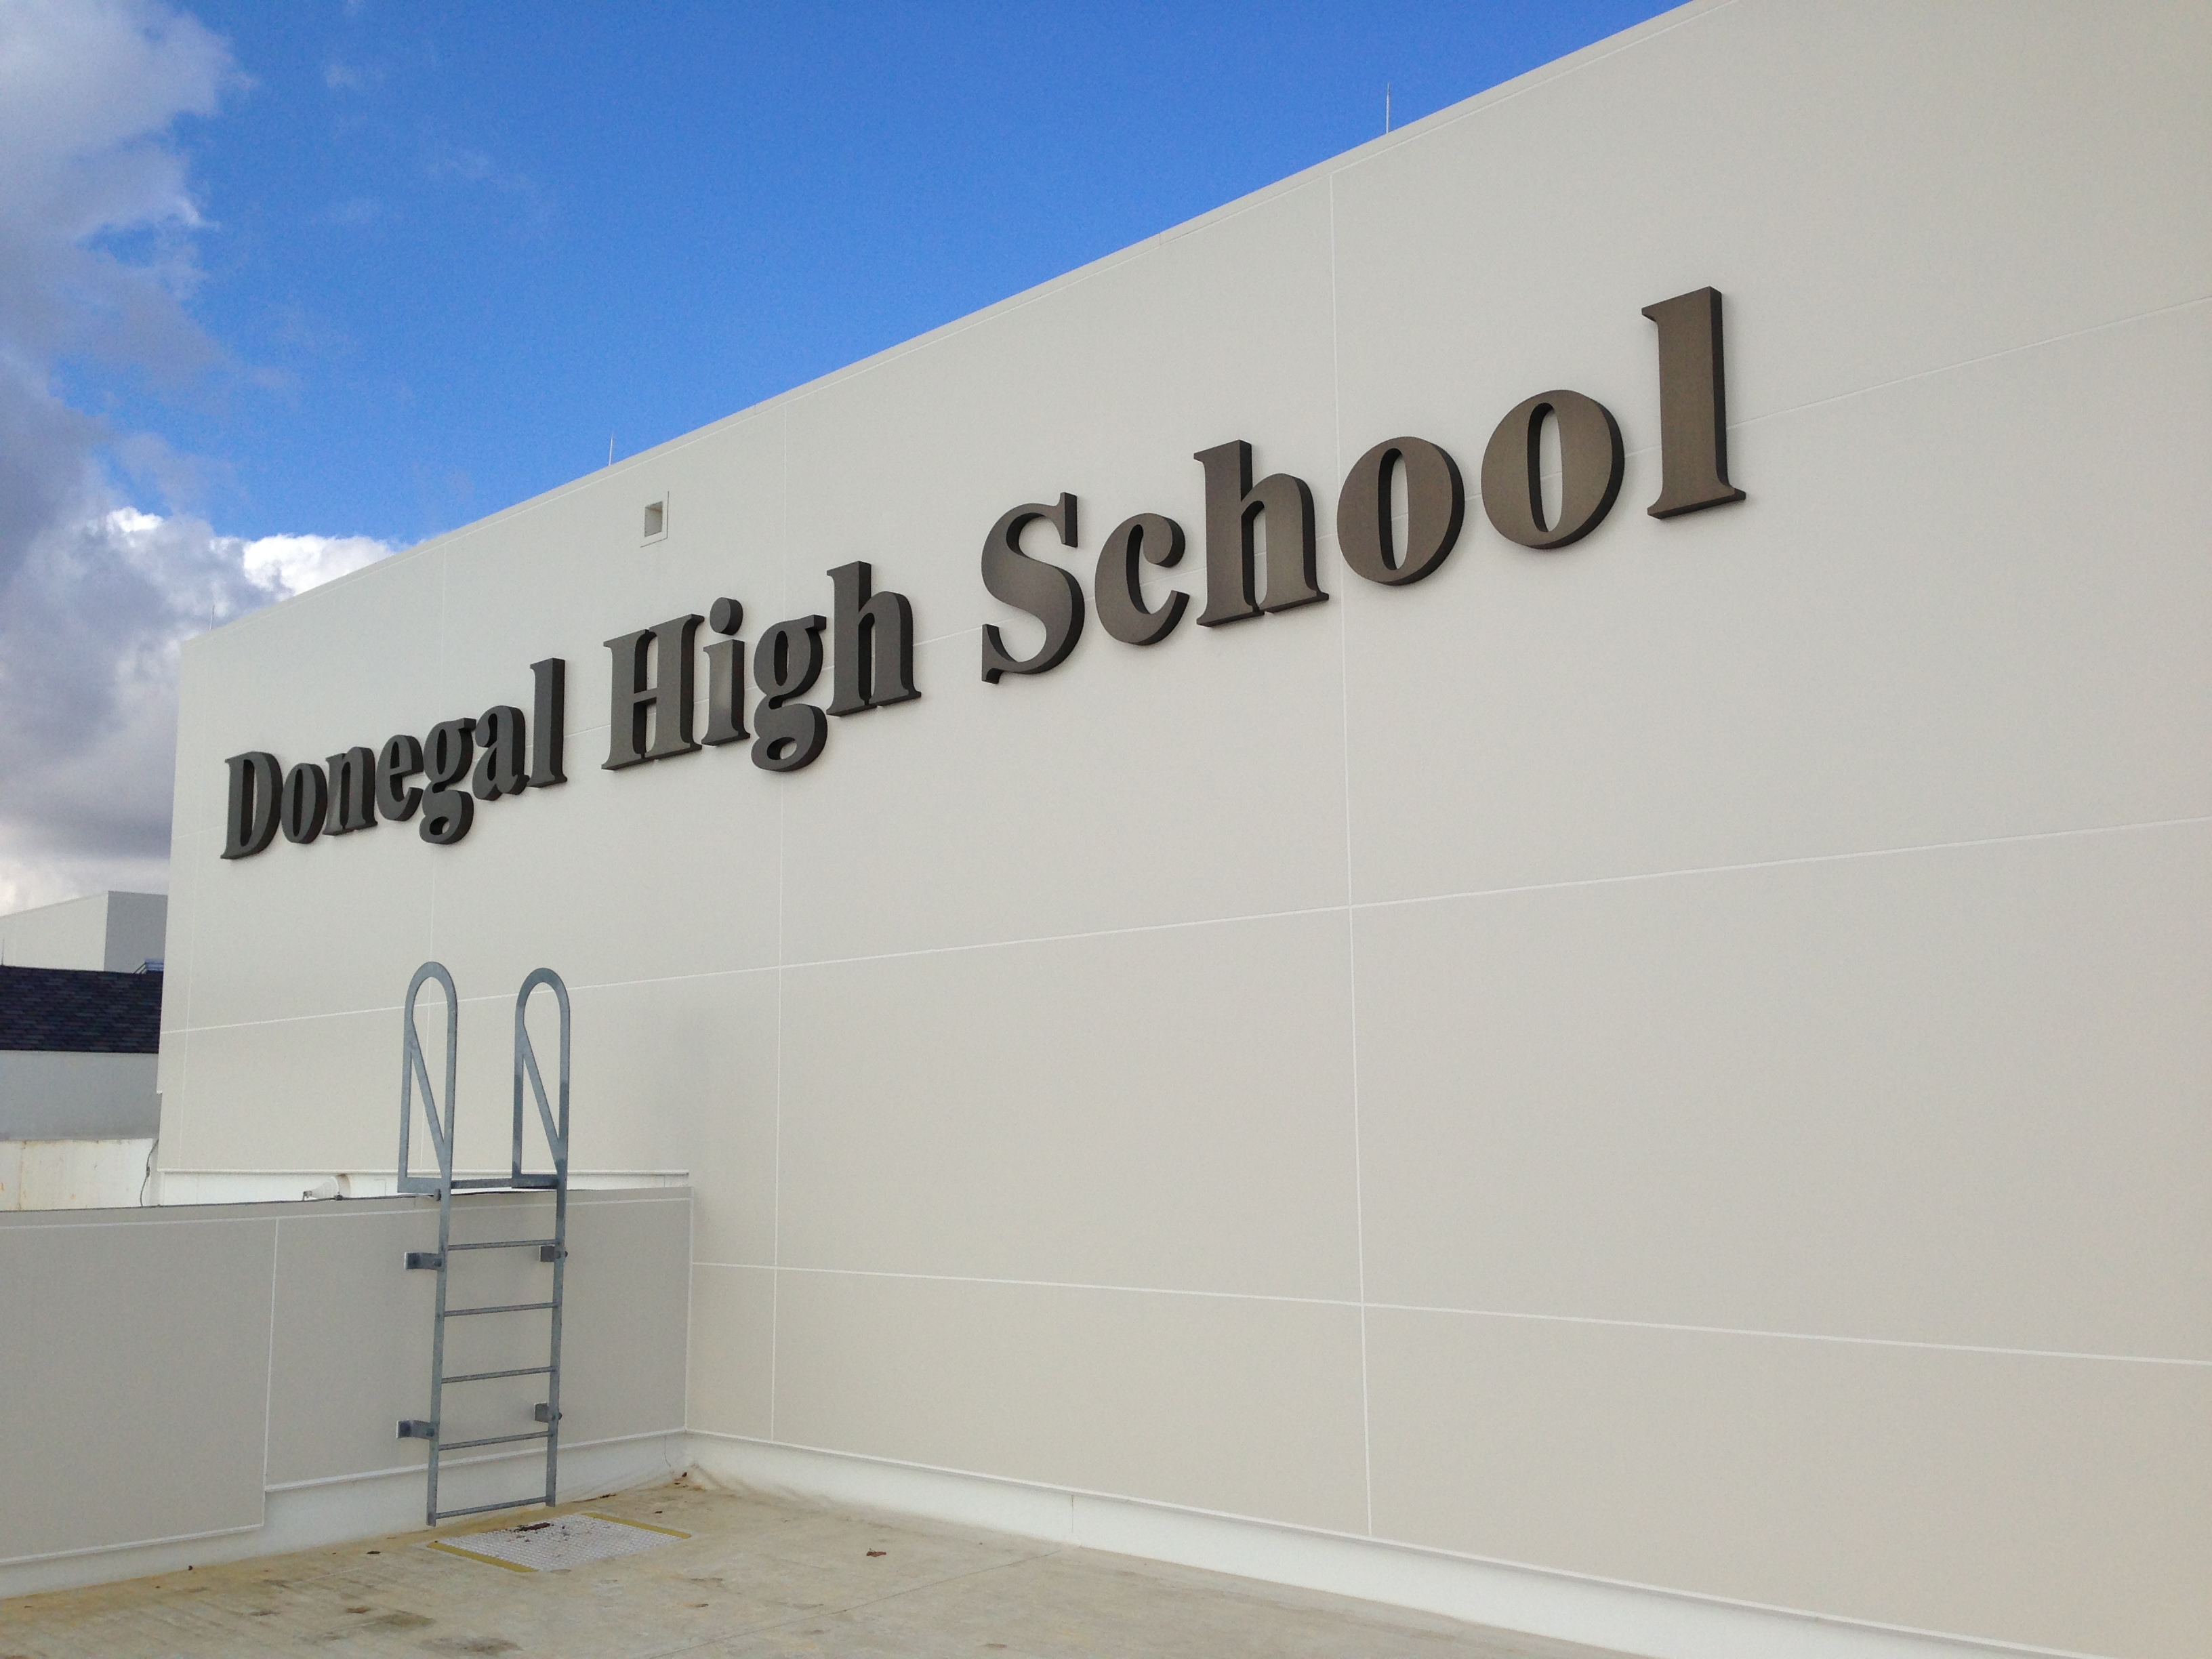 Donegal High School